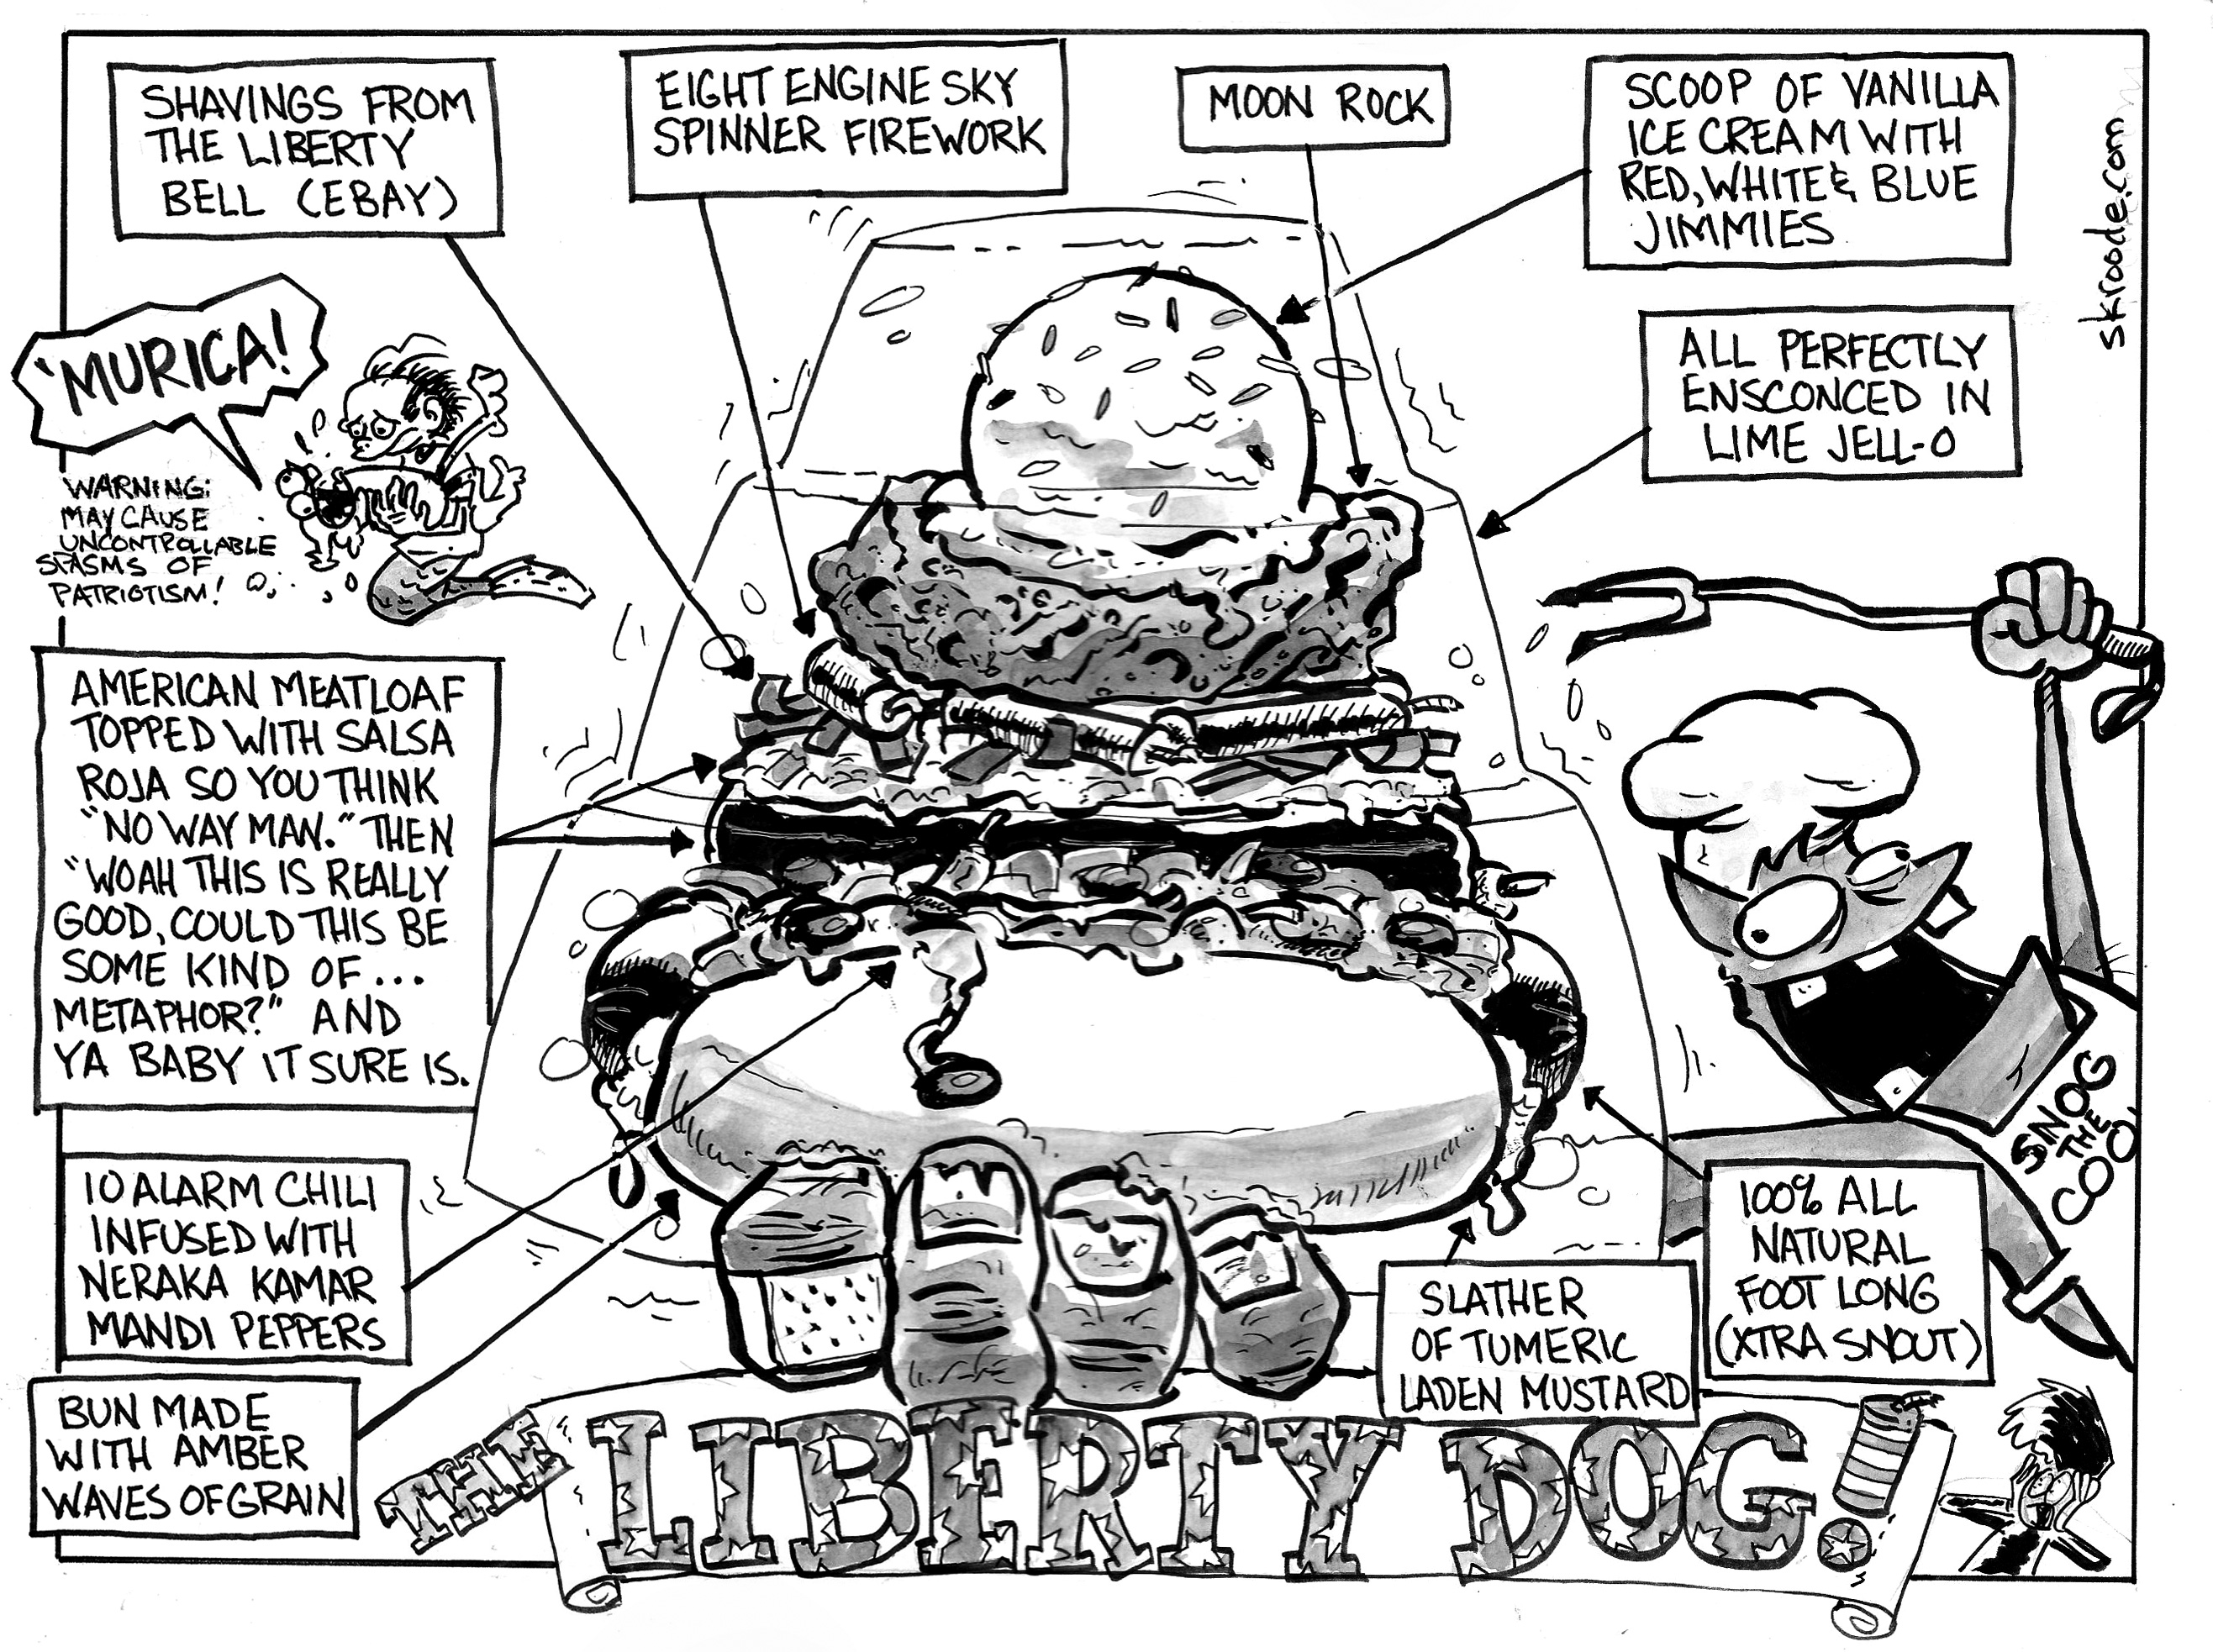 The LIBERTY DOG